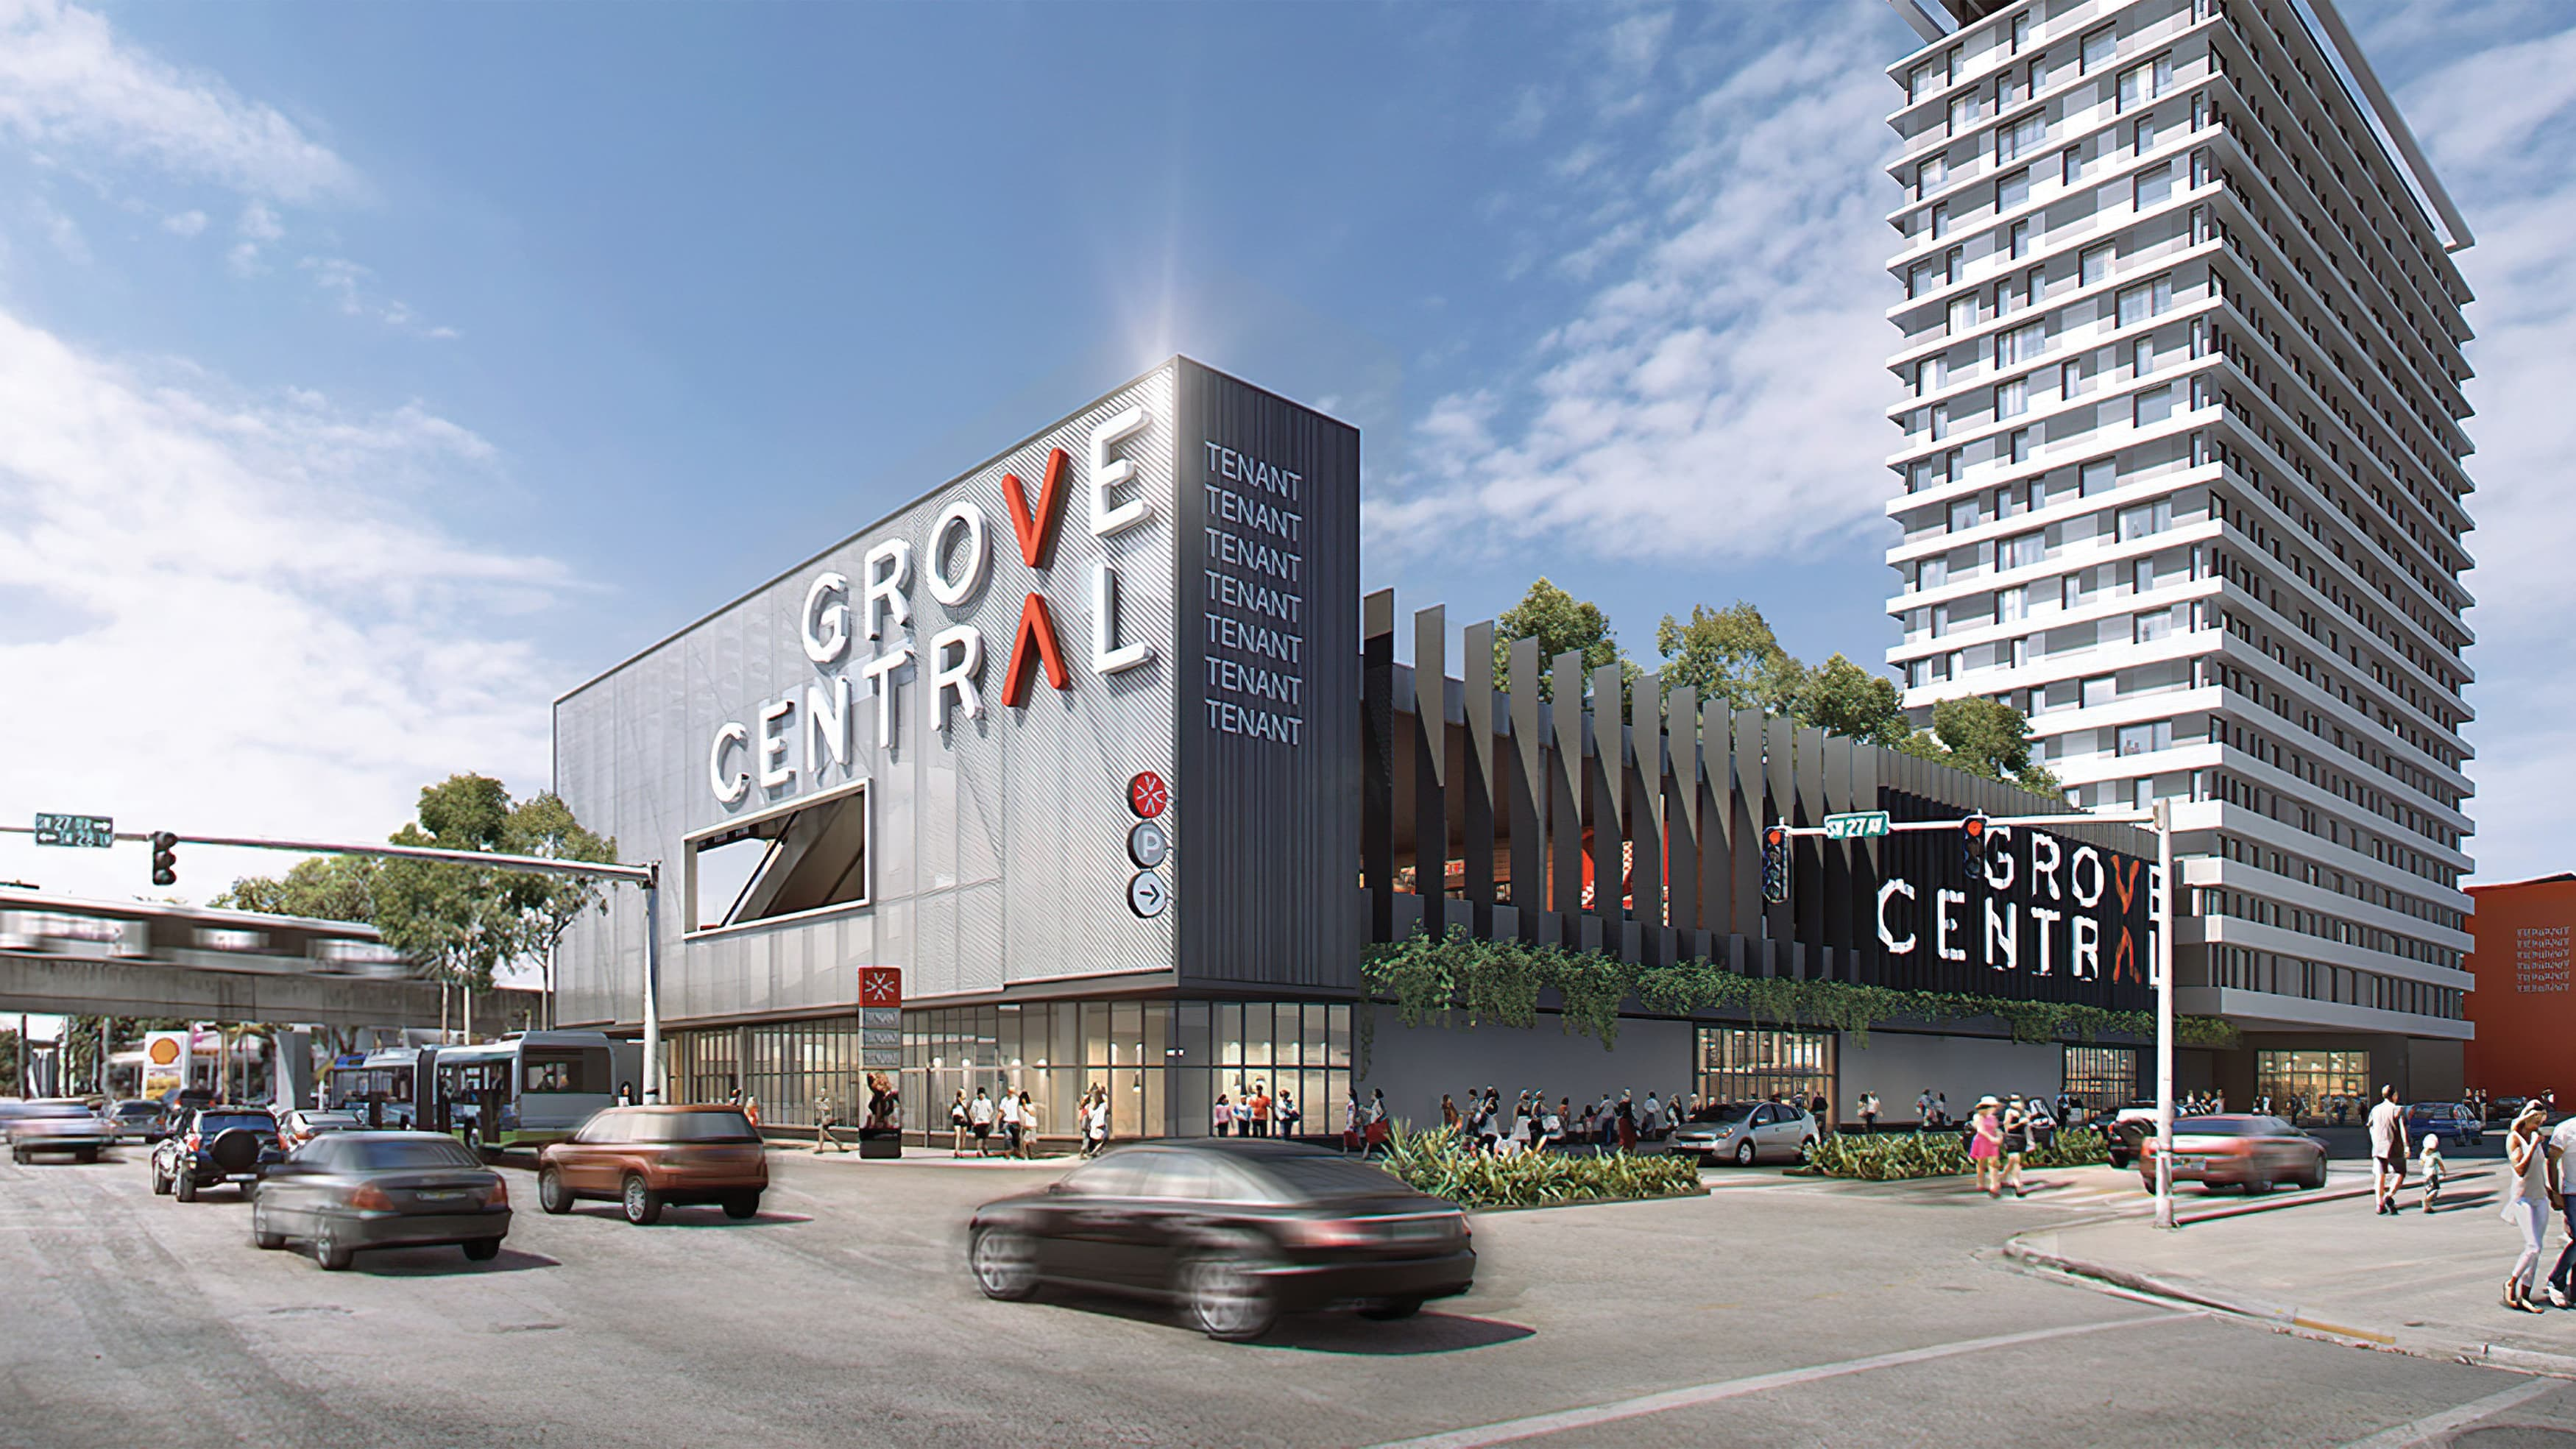 A rendering of architecture featuring large, bold identity signage.